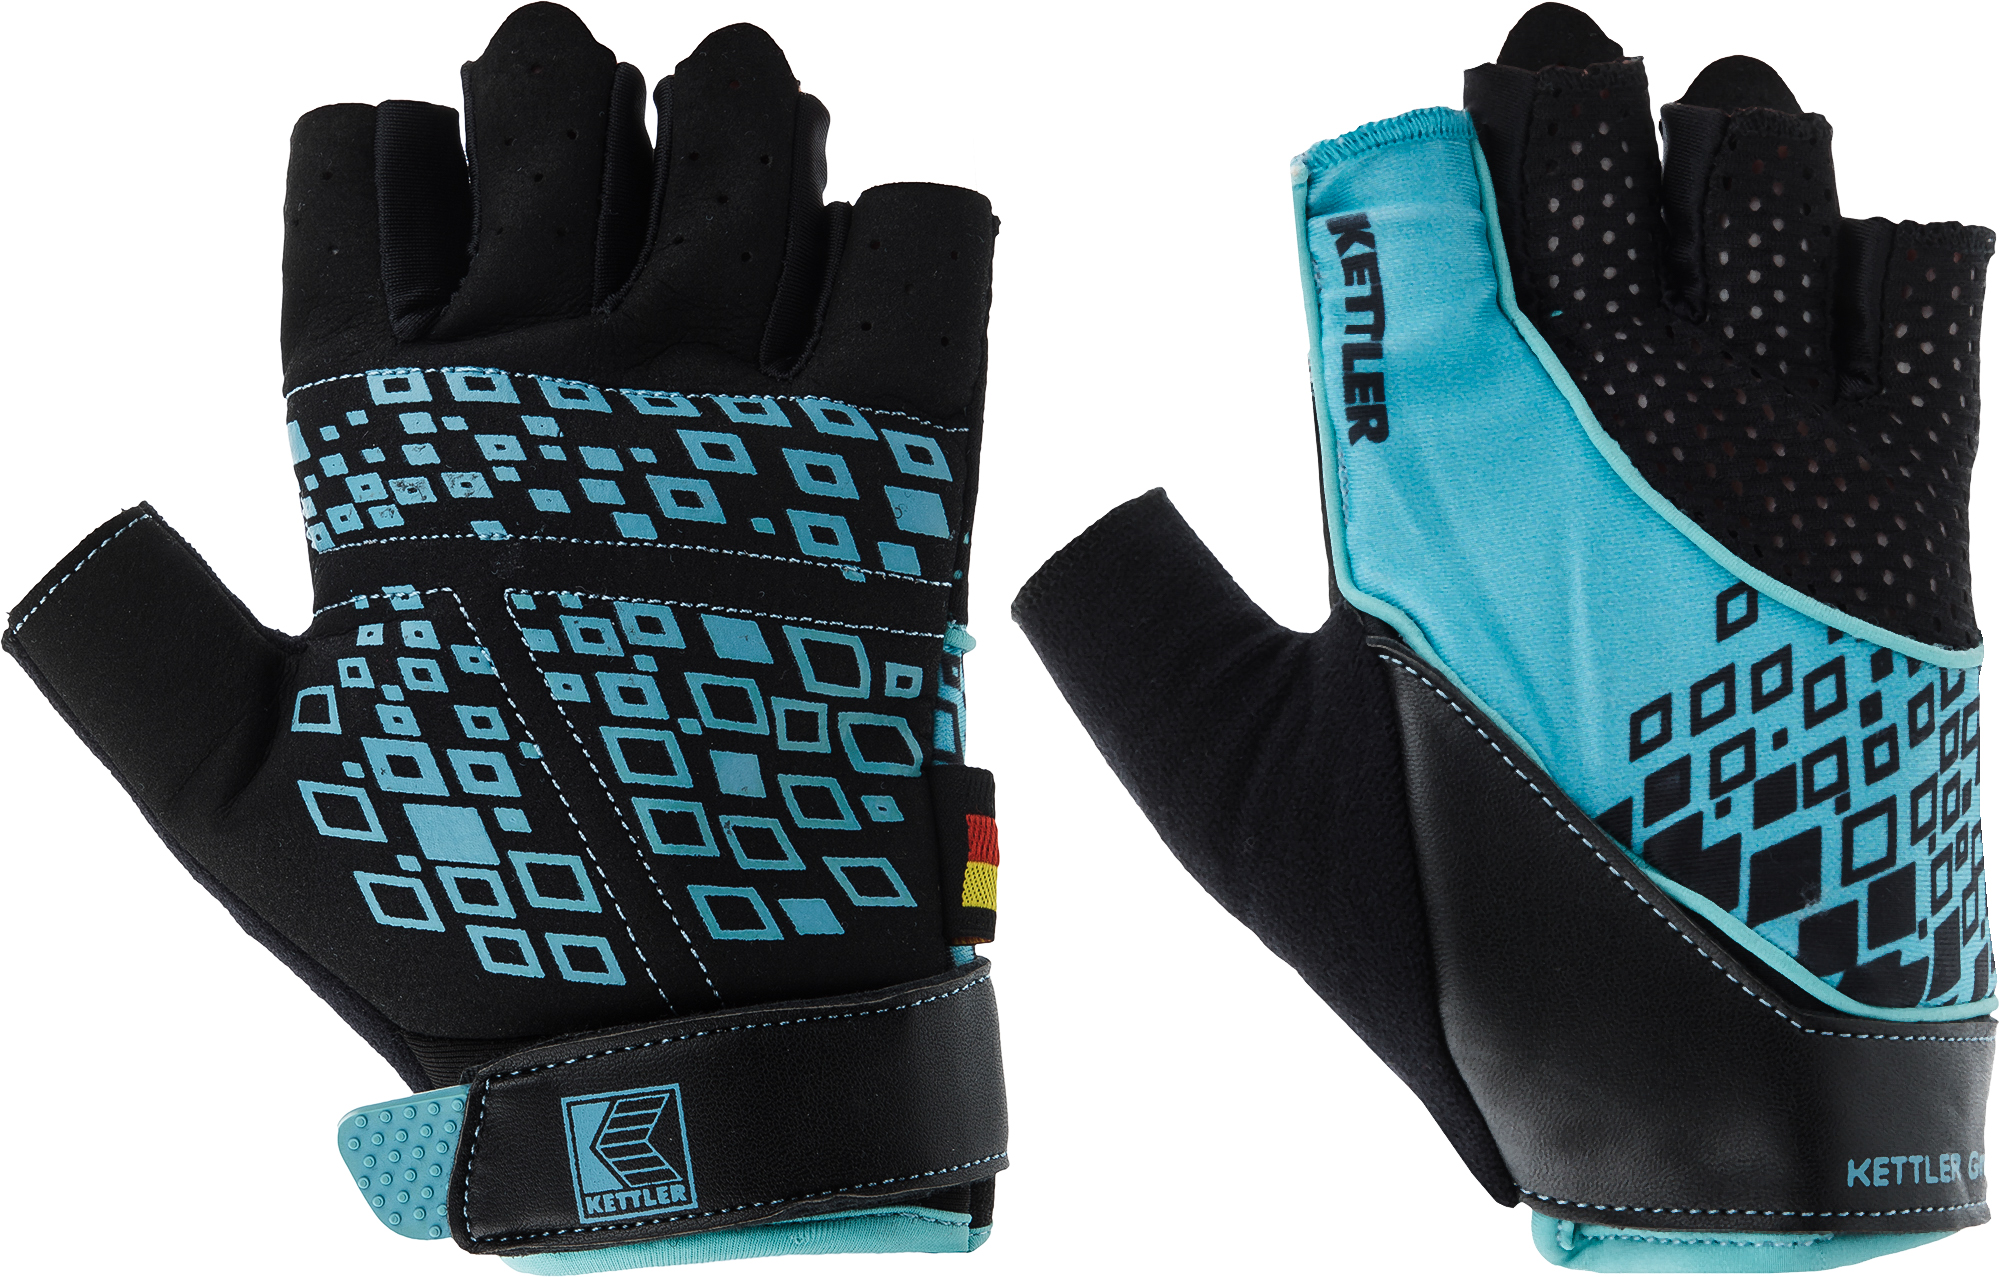 Kettler Перчатки для фитнеса Kettler Fitness Gloves AK-310W-S1, размер 7.5